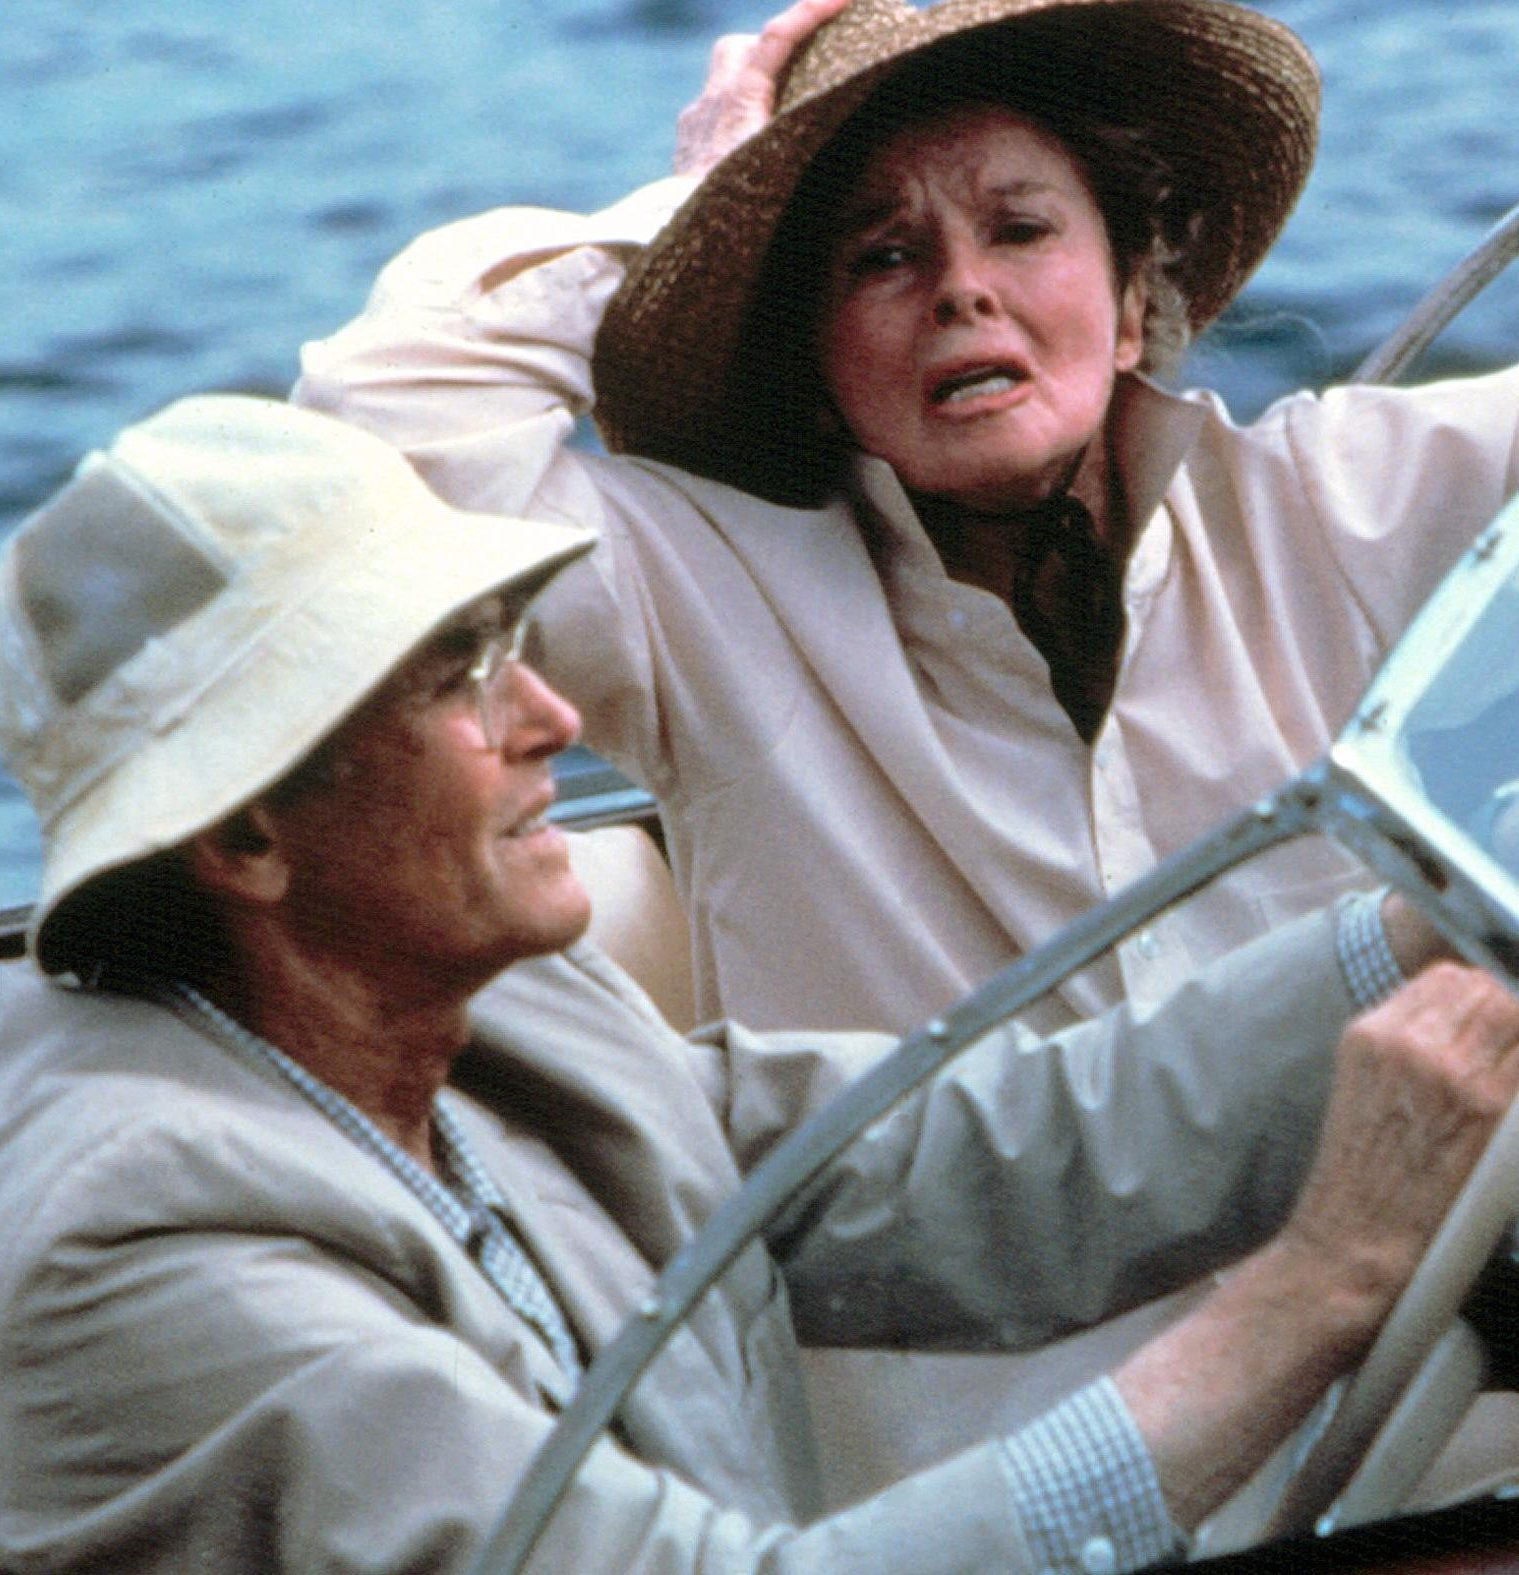 methode times prod web bin 370e31ca feee 11e8 9a88 fa81ced0c139 e1599223508371 8 Fascinating Facts About The Oscar Winning 1981 Film On Golden Pond